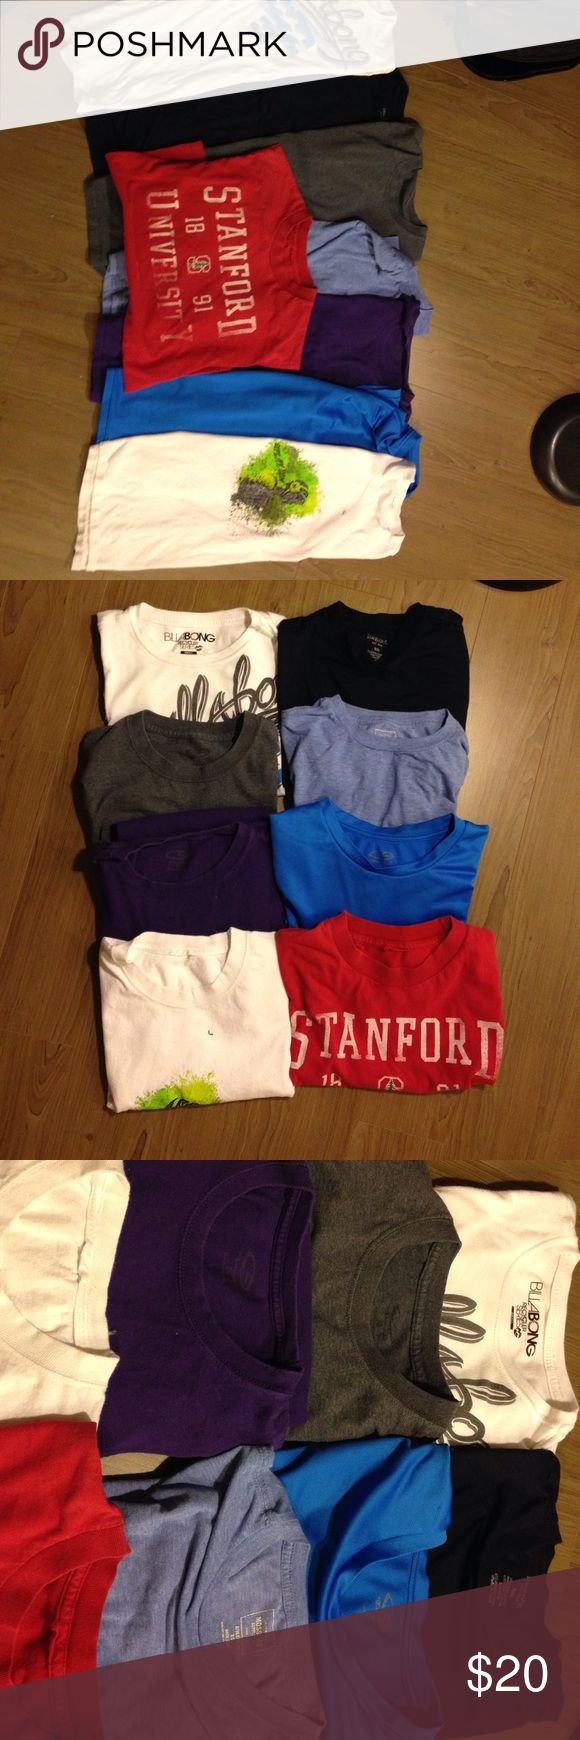 Bundle of 8 t-shirt, short sleeves ‼️ This bundle has: 1. White adult small billabong 1. Black small adult haggar 1 gray champion adult small, 1. Aqua champion adult small, 1 purple champion adult small, 1. light blue MOSSIMO supply CO, small adult 1. White no brand and 1. Red Stanford t-shirt. All are in good condition except for the red,it is in fair condition. Shirts & Tops Tees - Short Sleeve